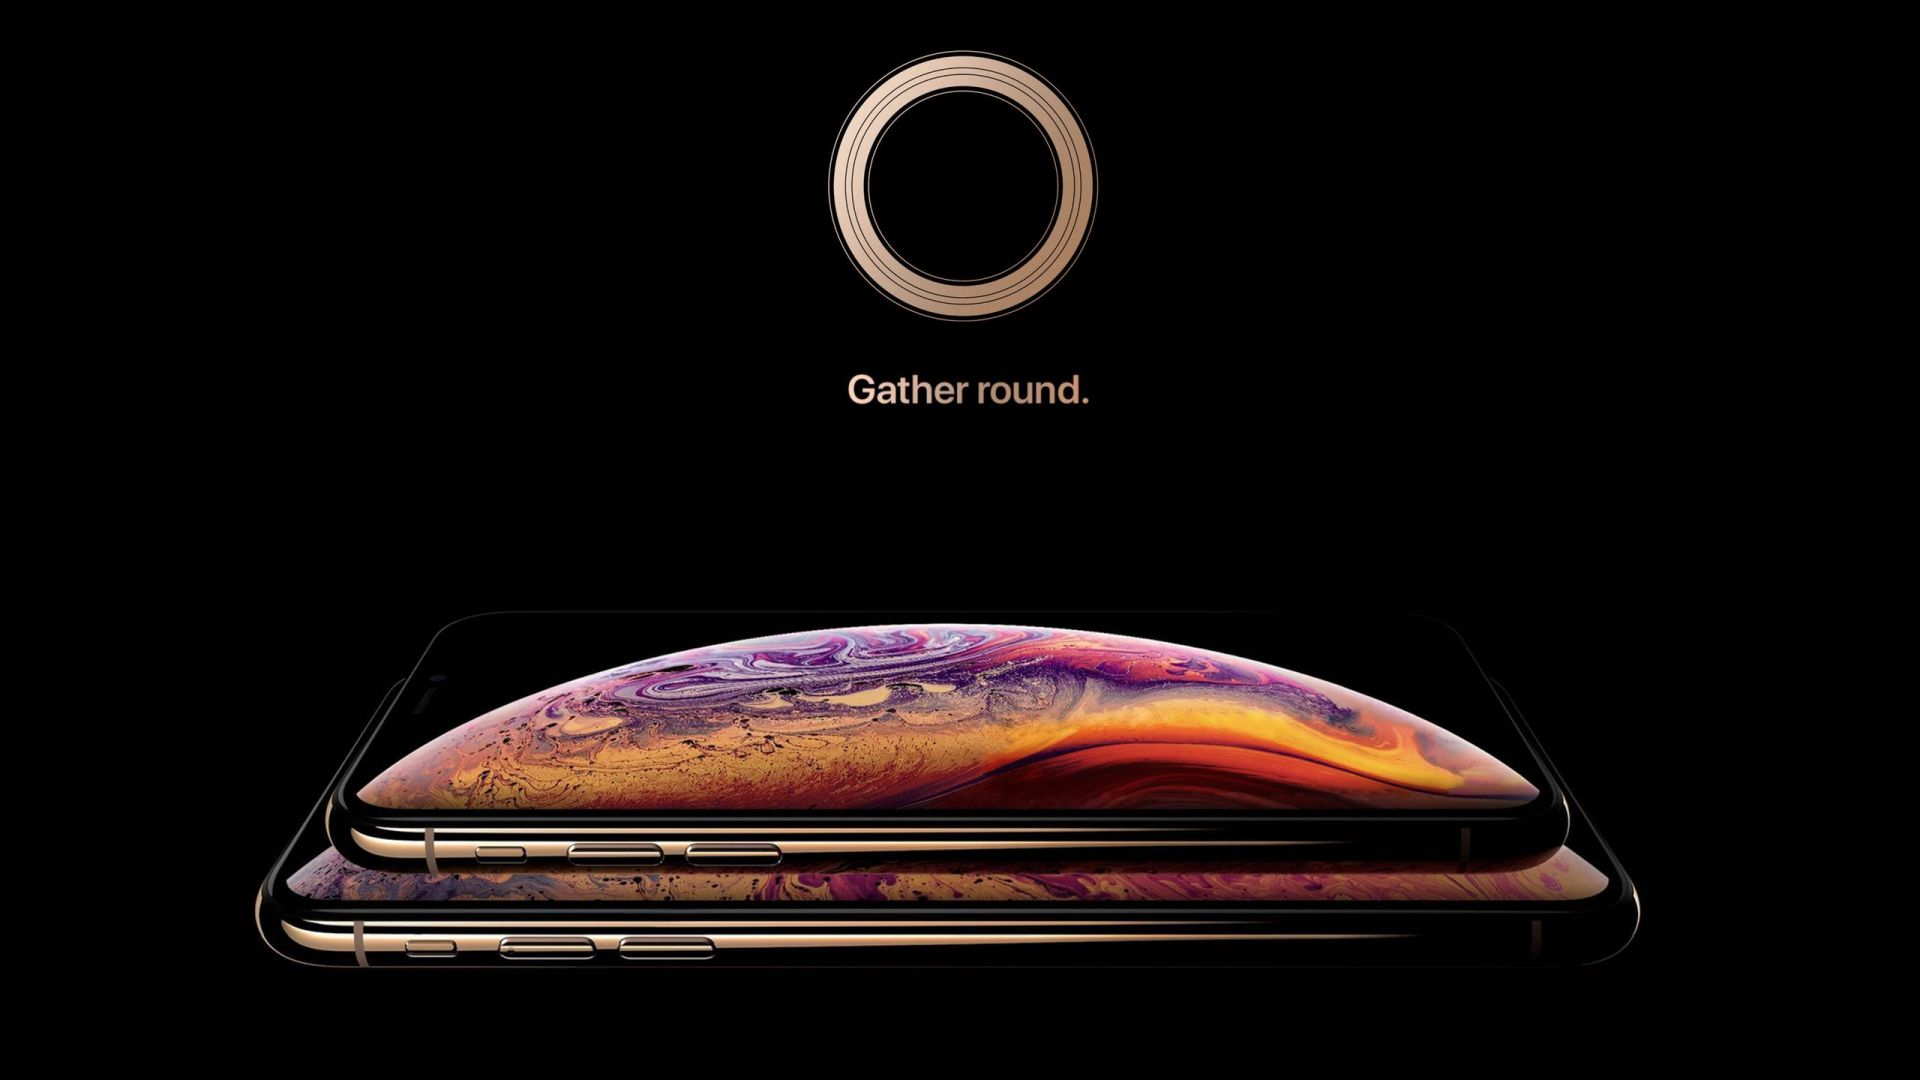 iPhone XS, gold, smartphone, HD, Apple September 2018 Event (horizontal)